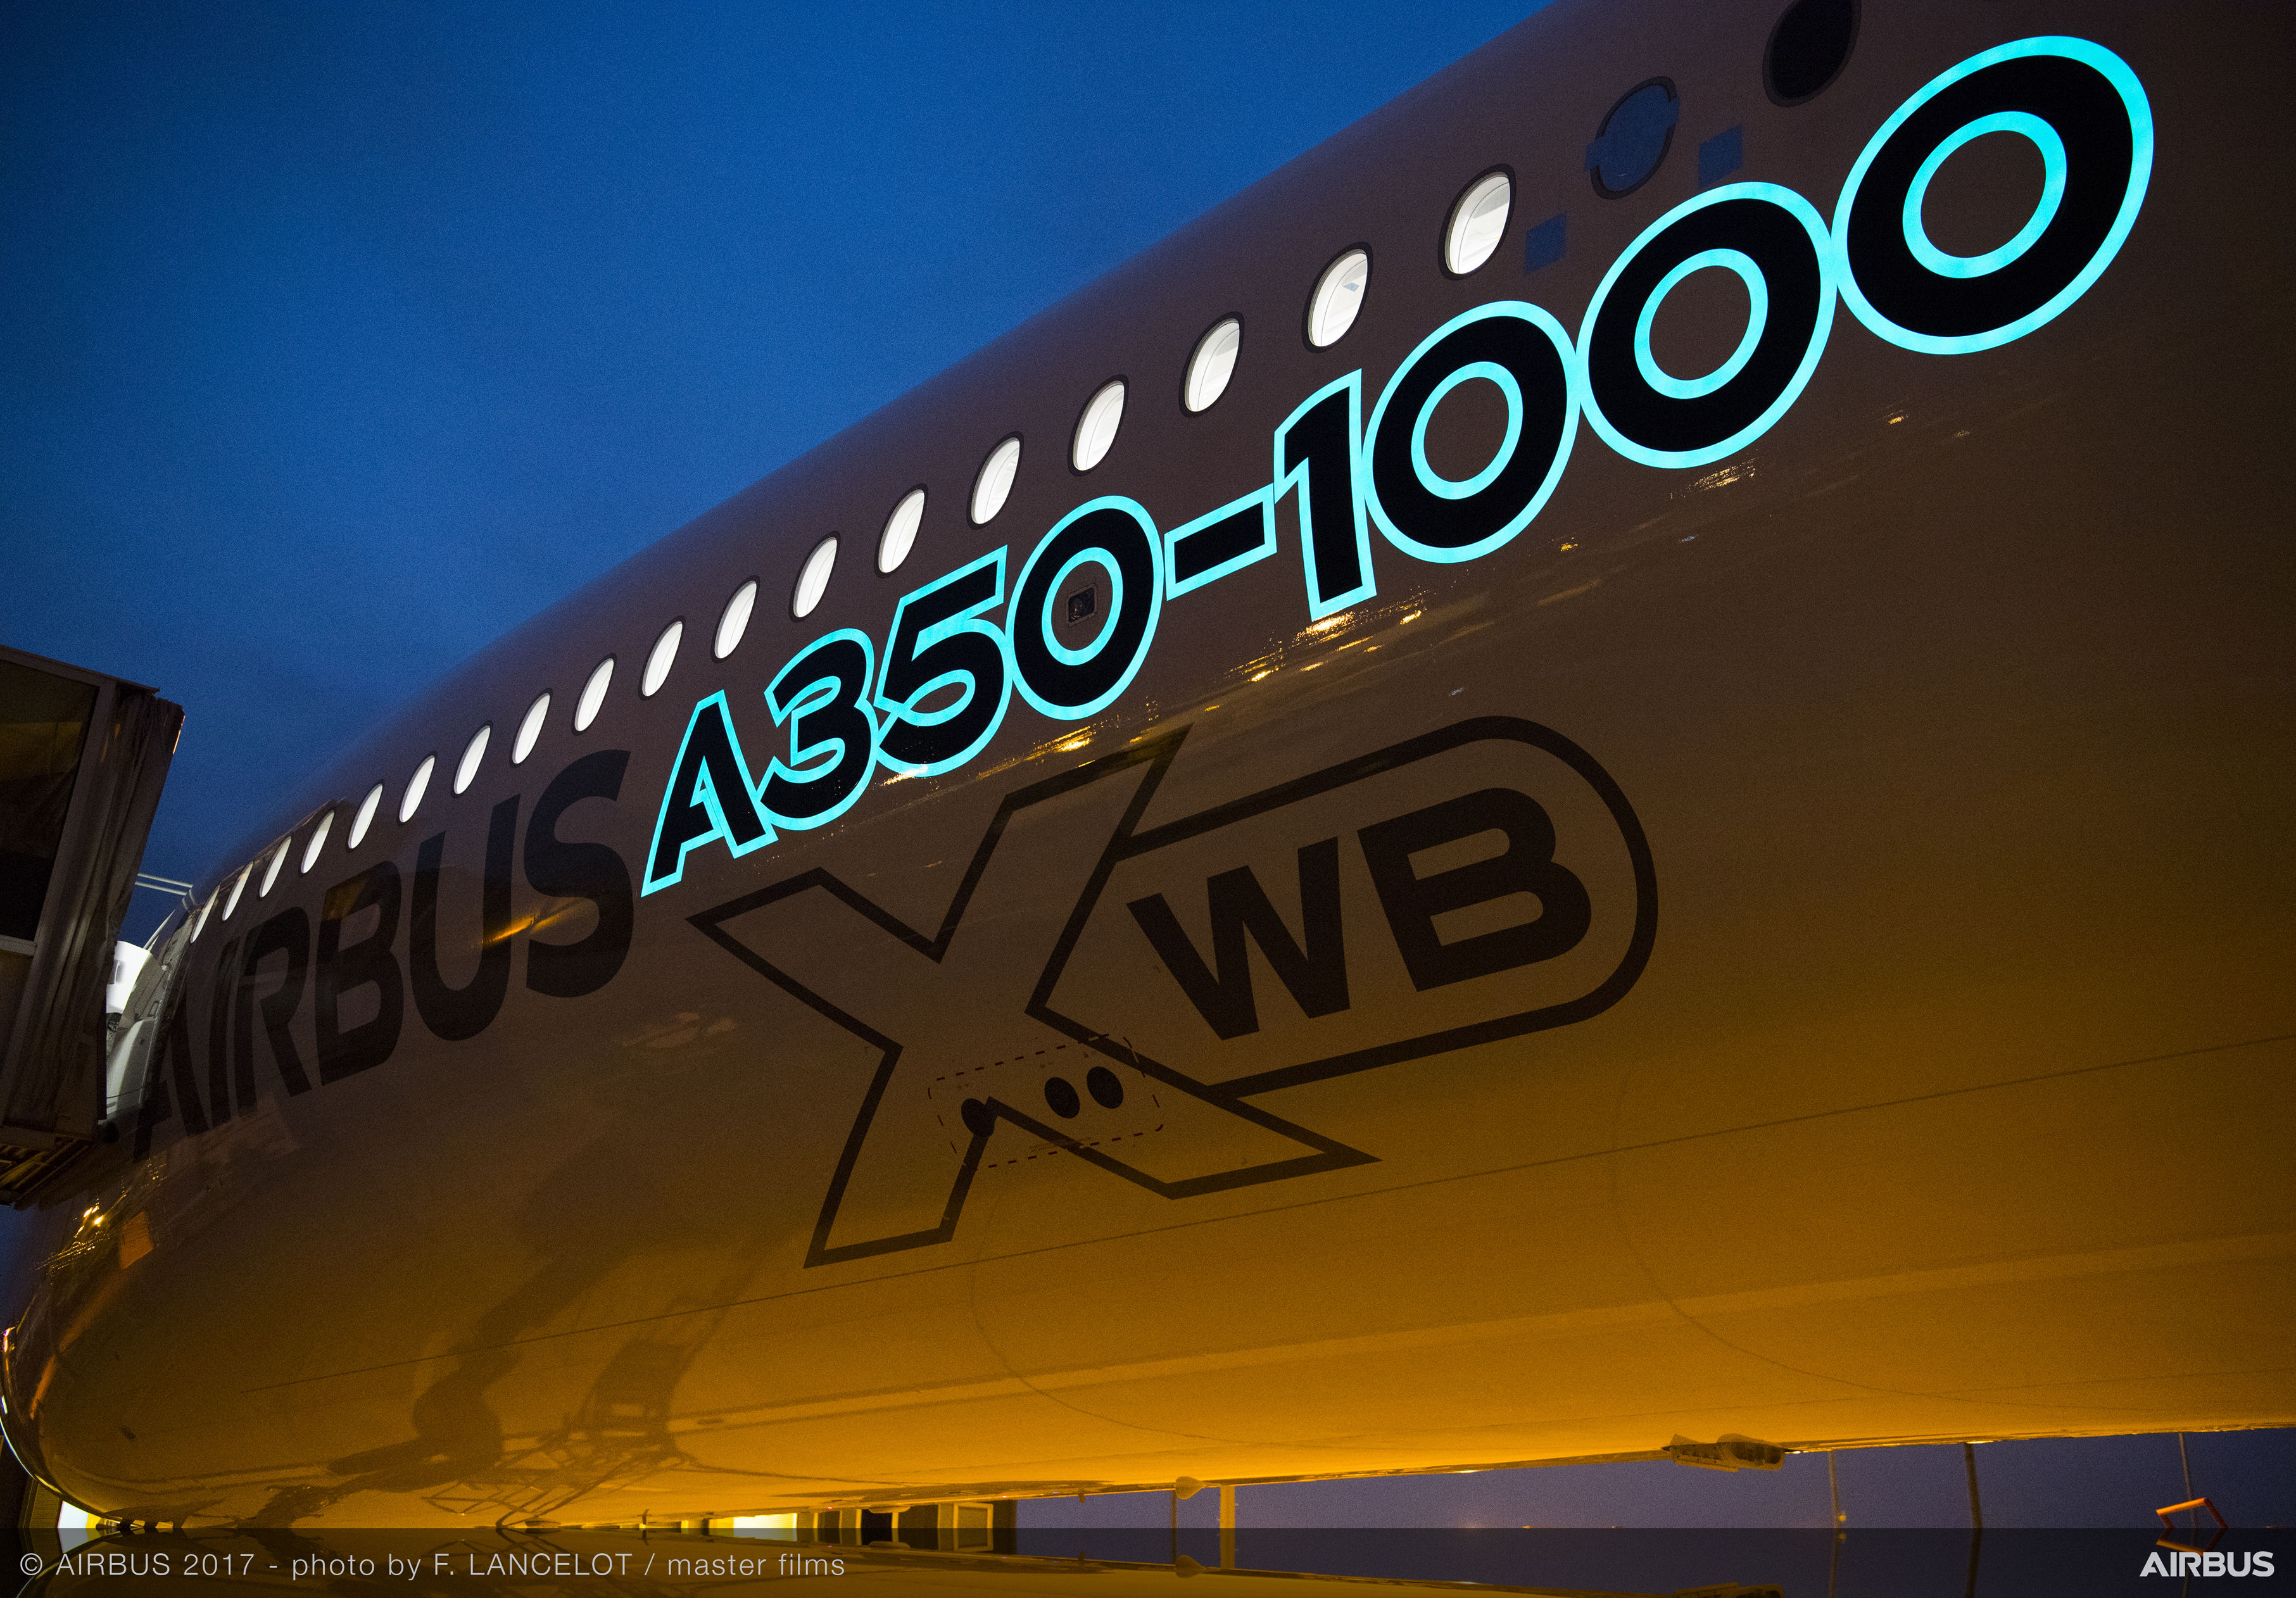 World S First Electroluminescent Paint To Light Up Skies On Airbus Jets Business Wire